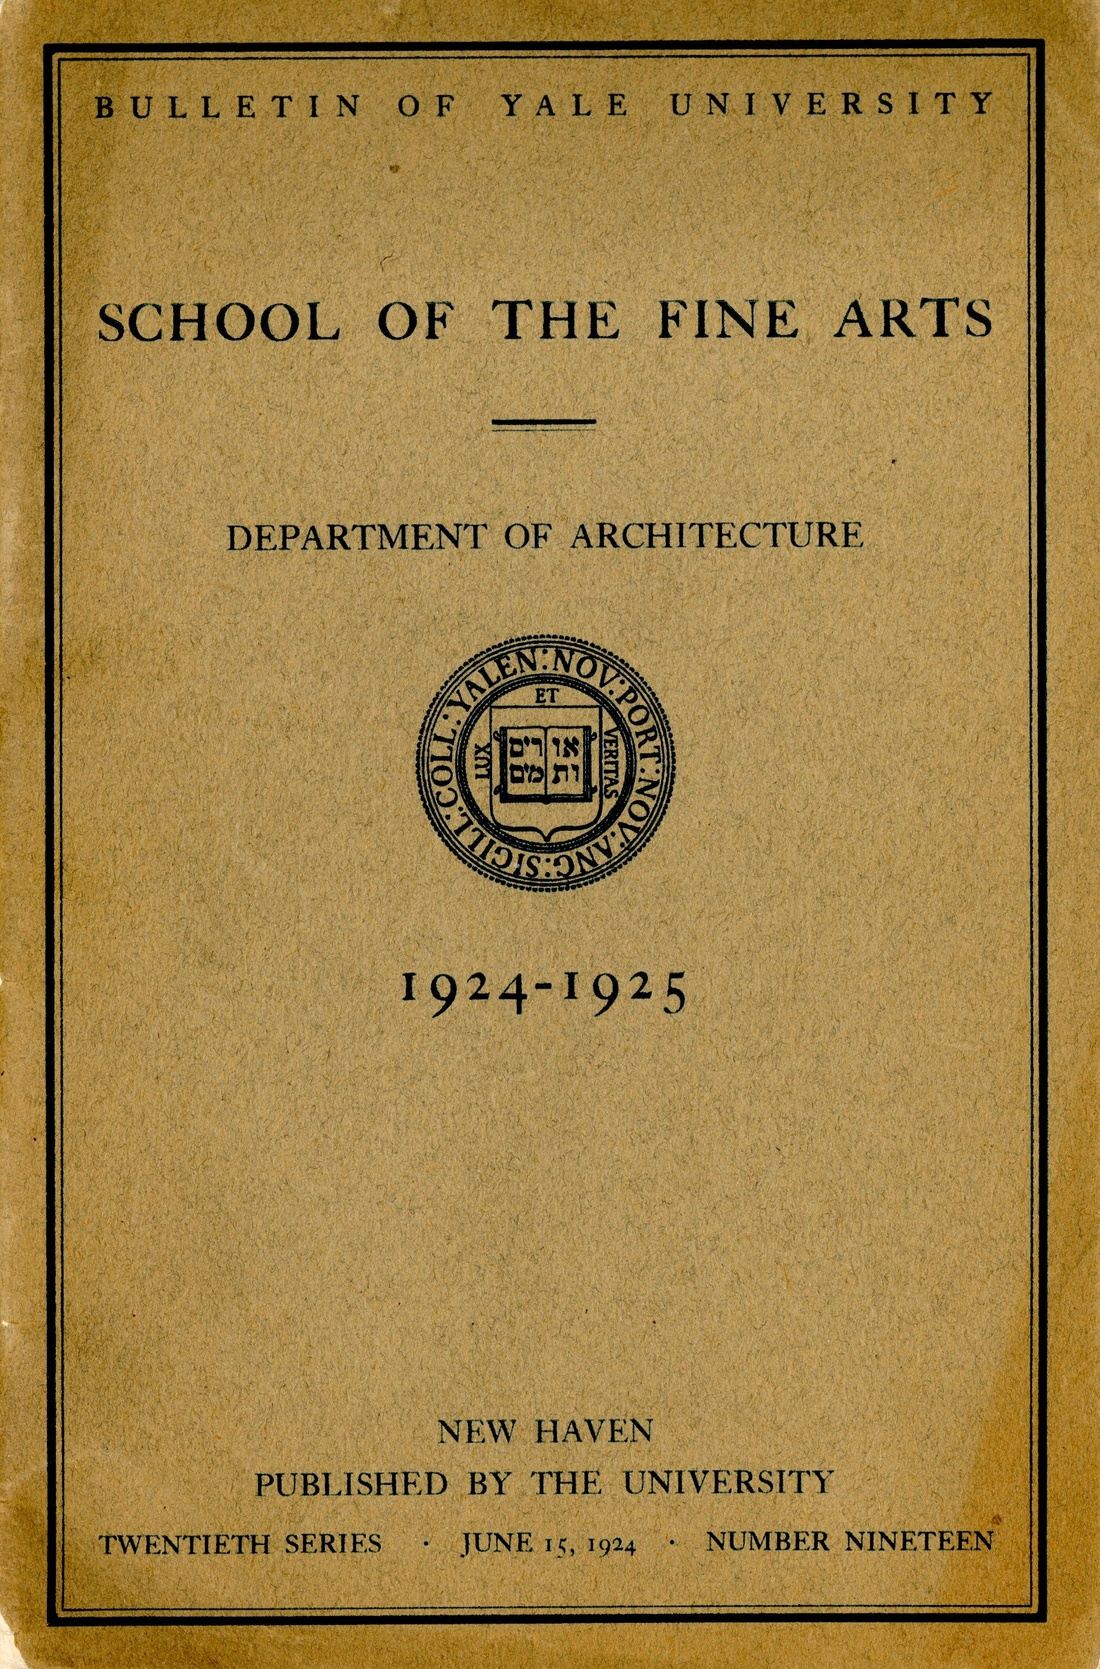 Department of Architecture Bulletin from 1924